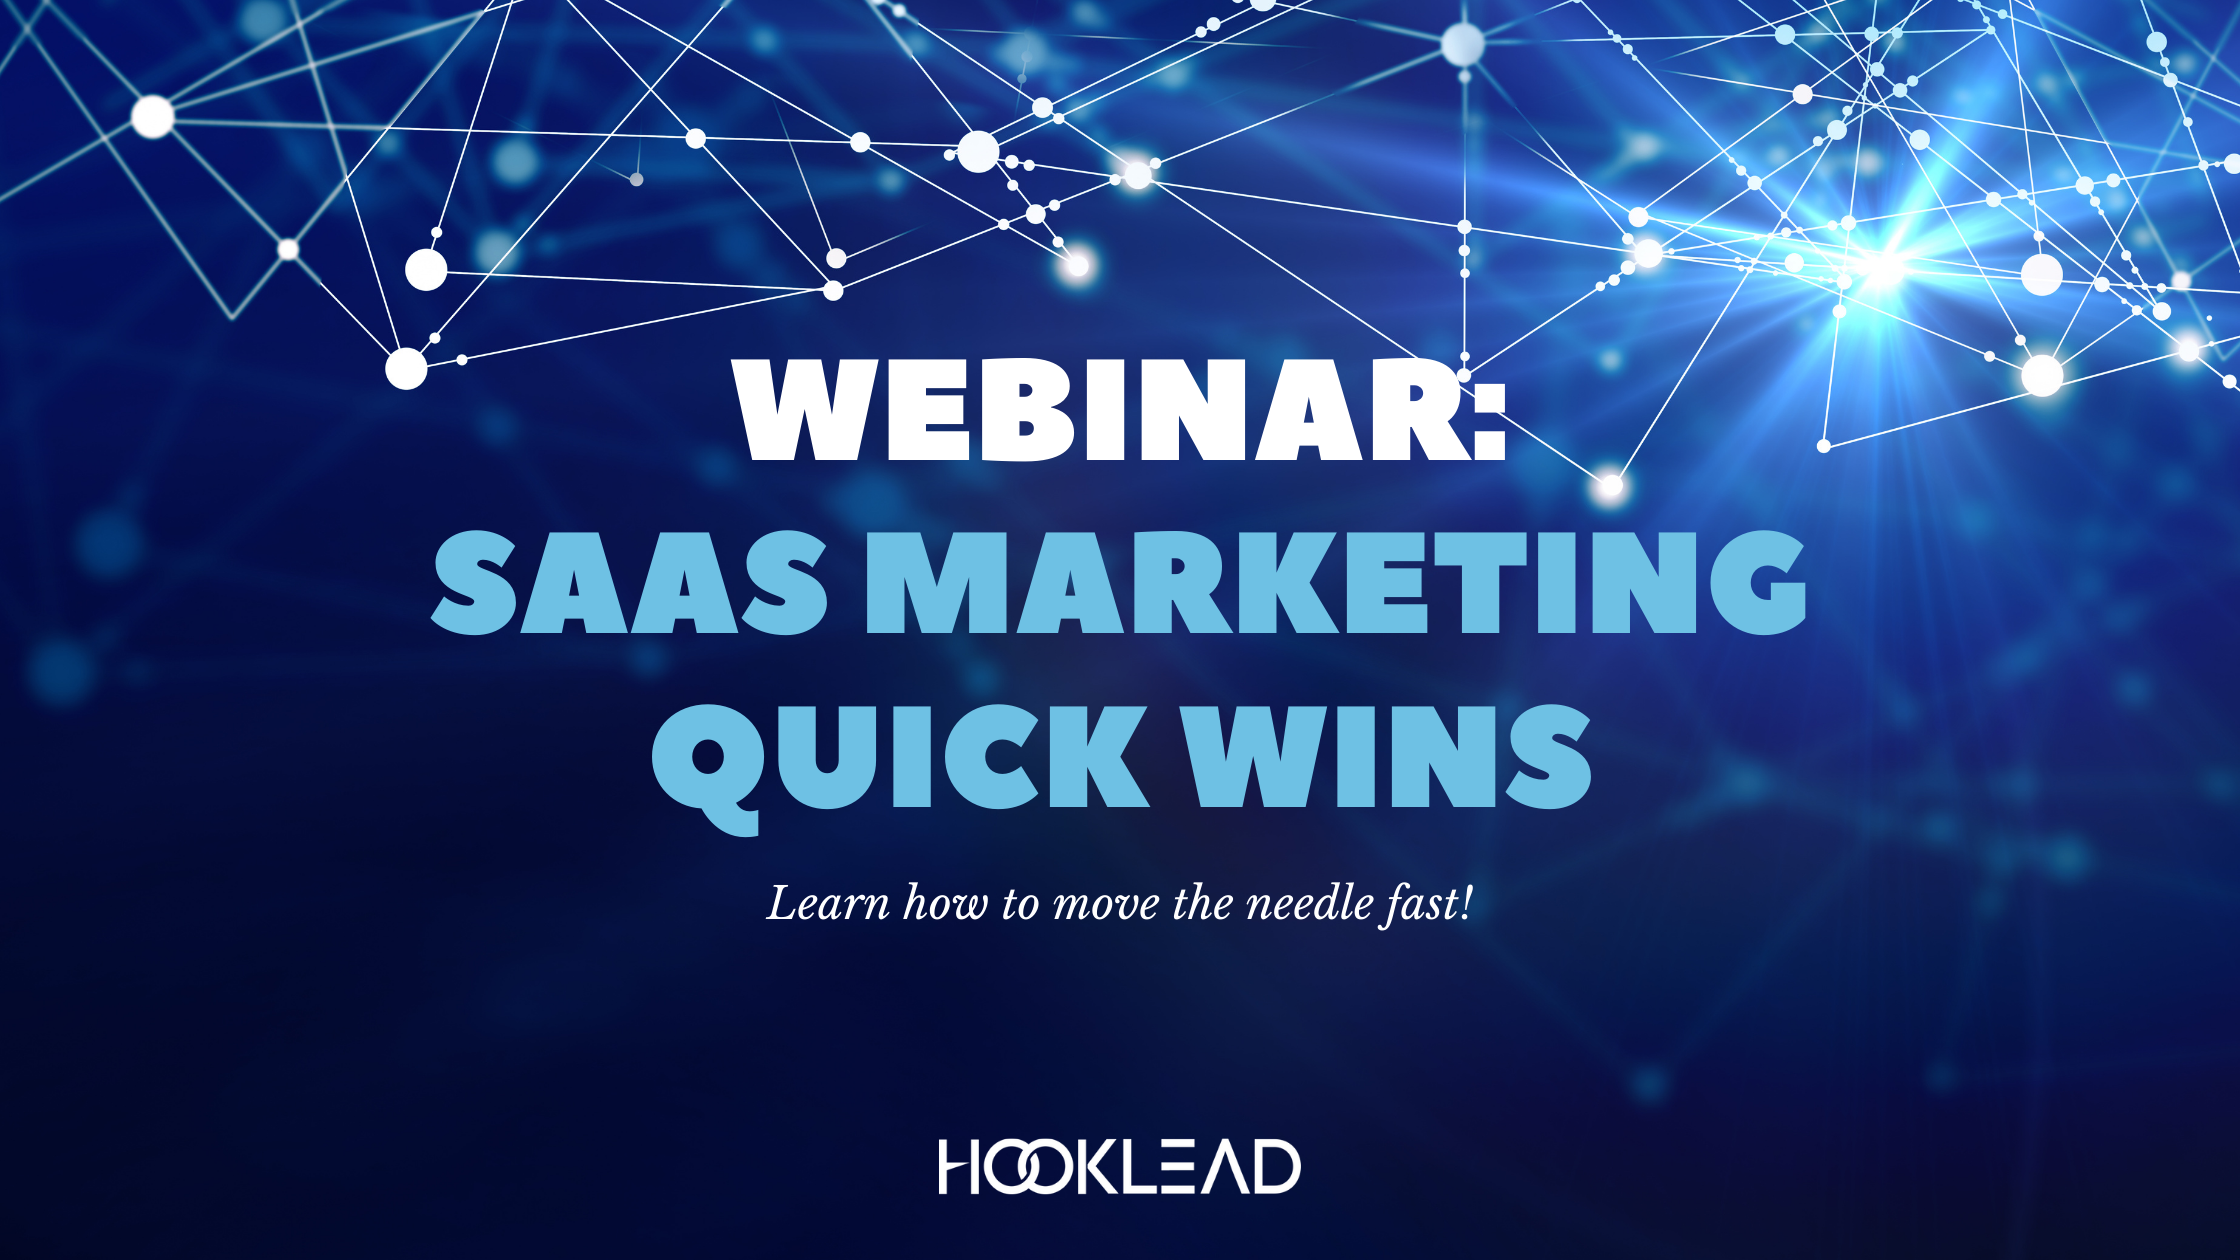 SaaS Marketing Quick Wins